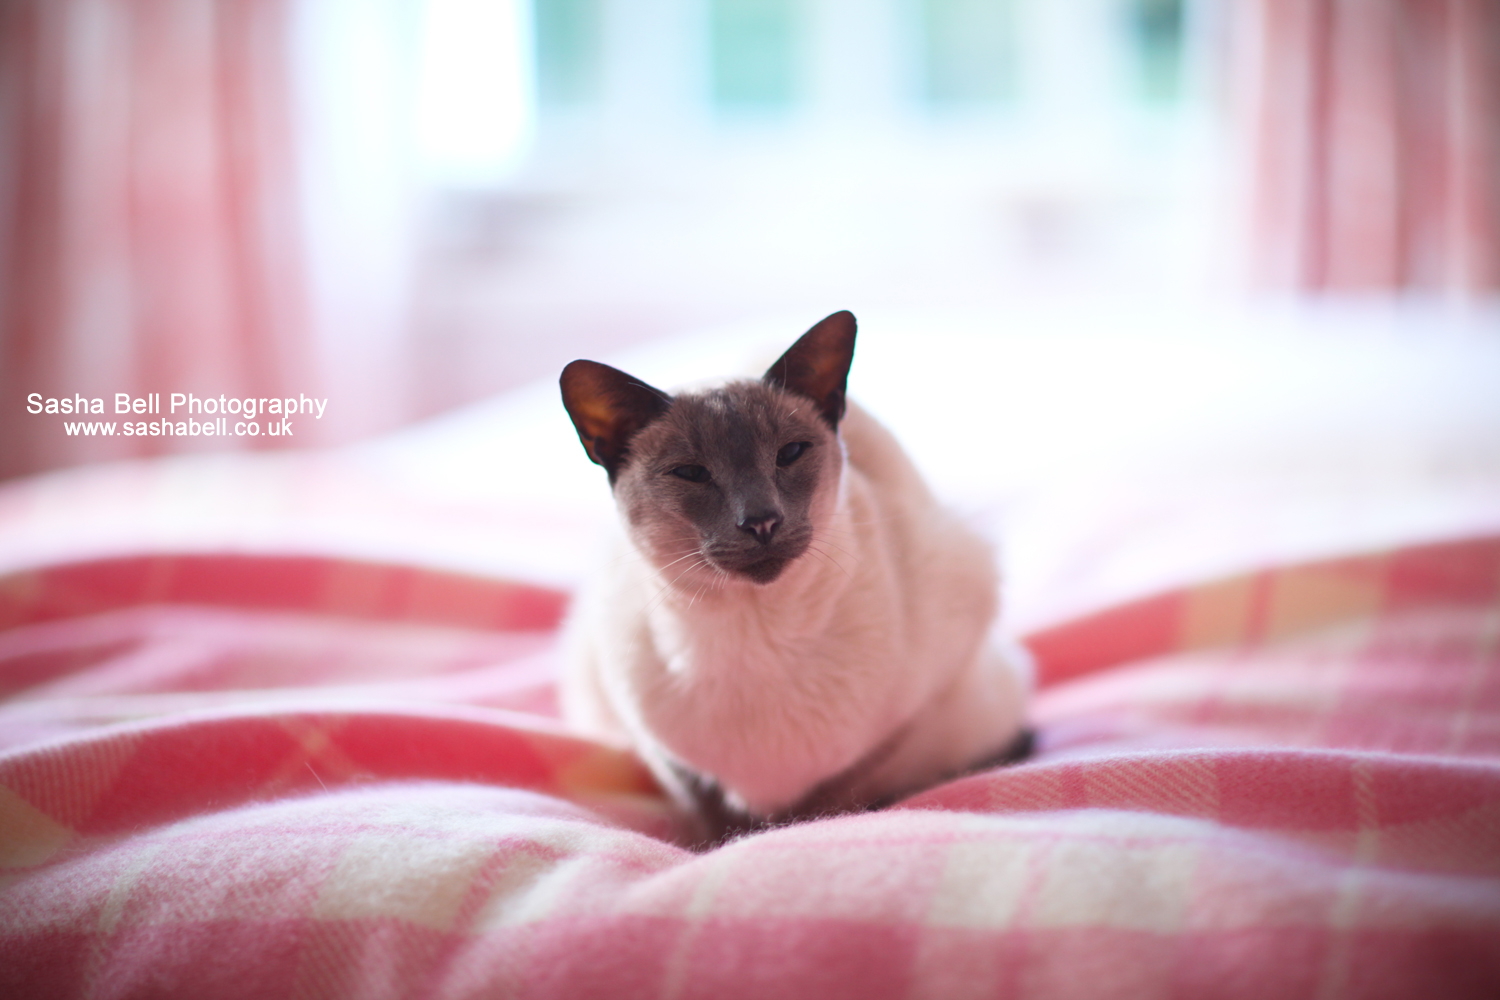 My Siamese Cat – Moonlight (photo series)